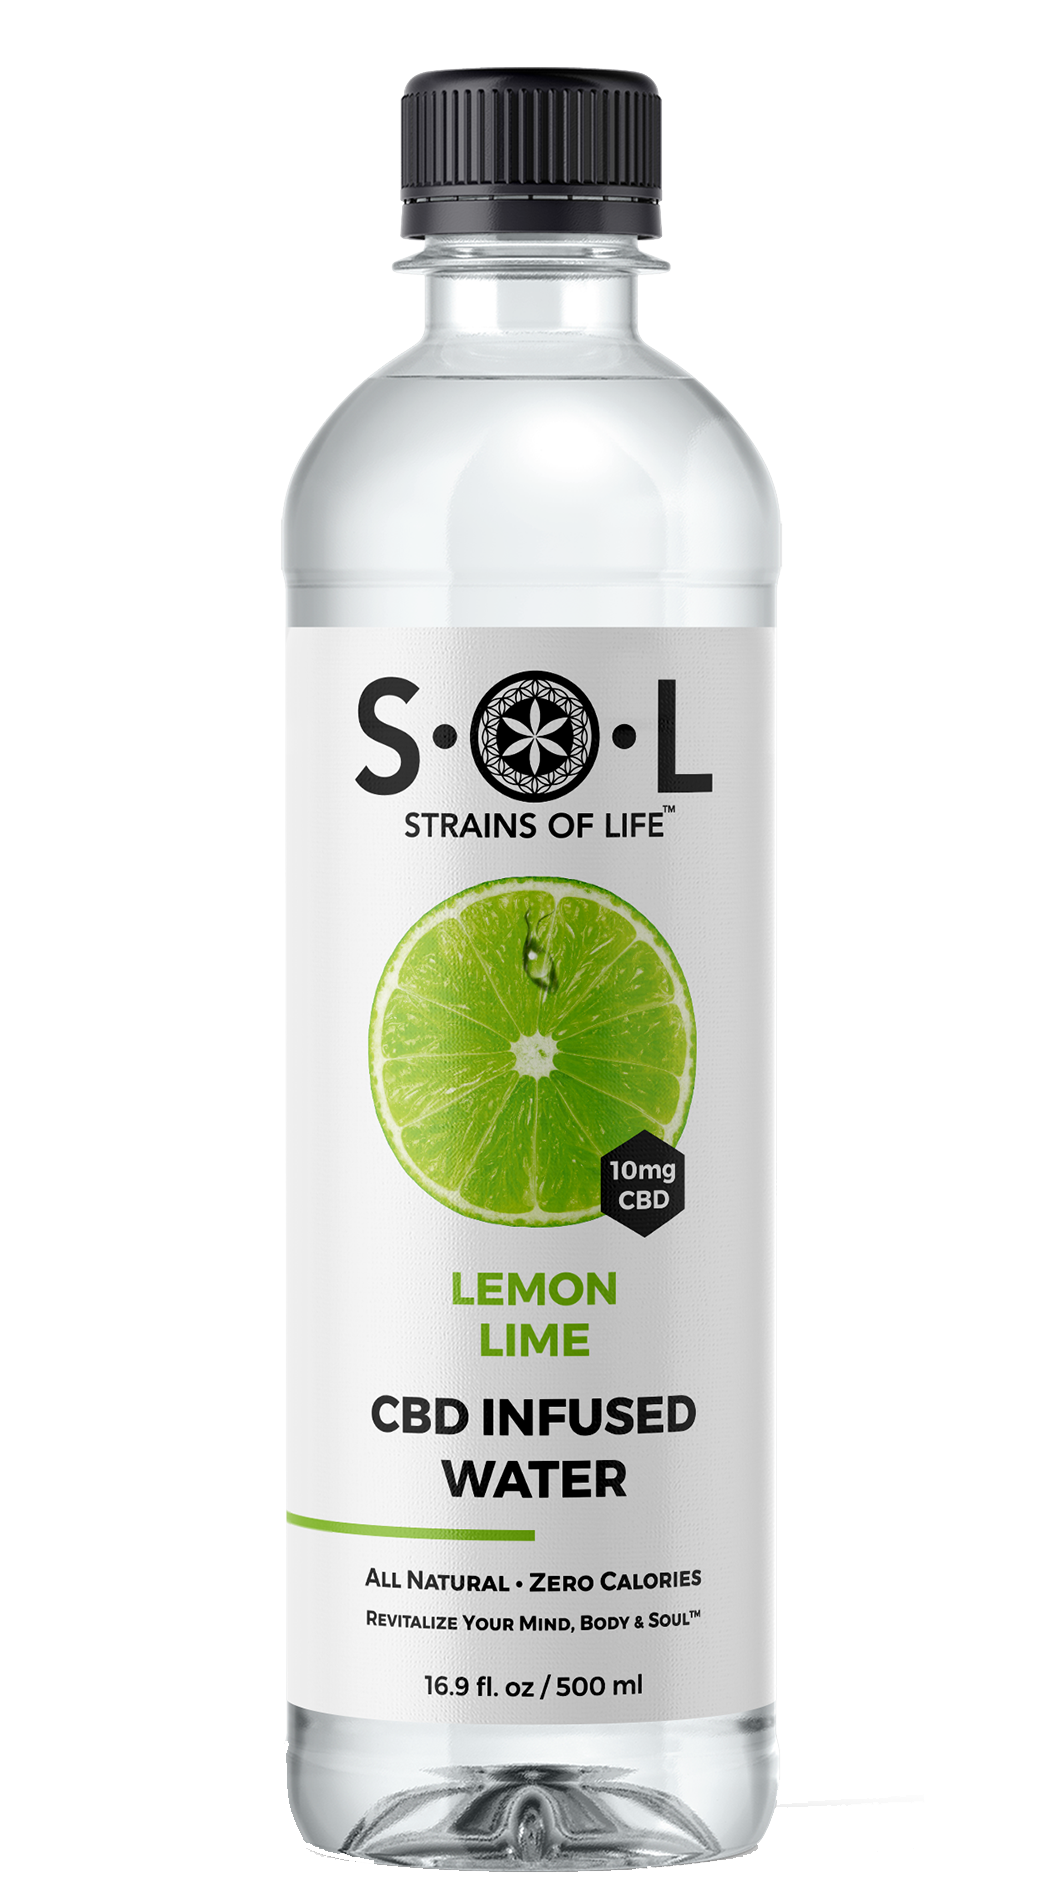 S•O•L CBD INFUSED WATER - LEMON LIME - 12 Bottle Box - 16 Oz Per Bottle